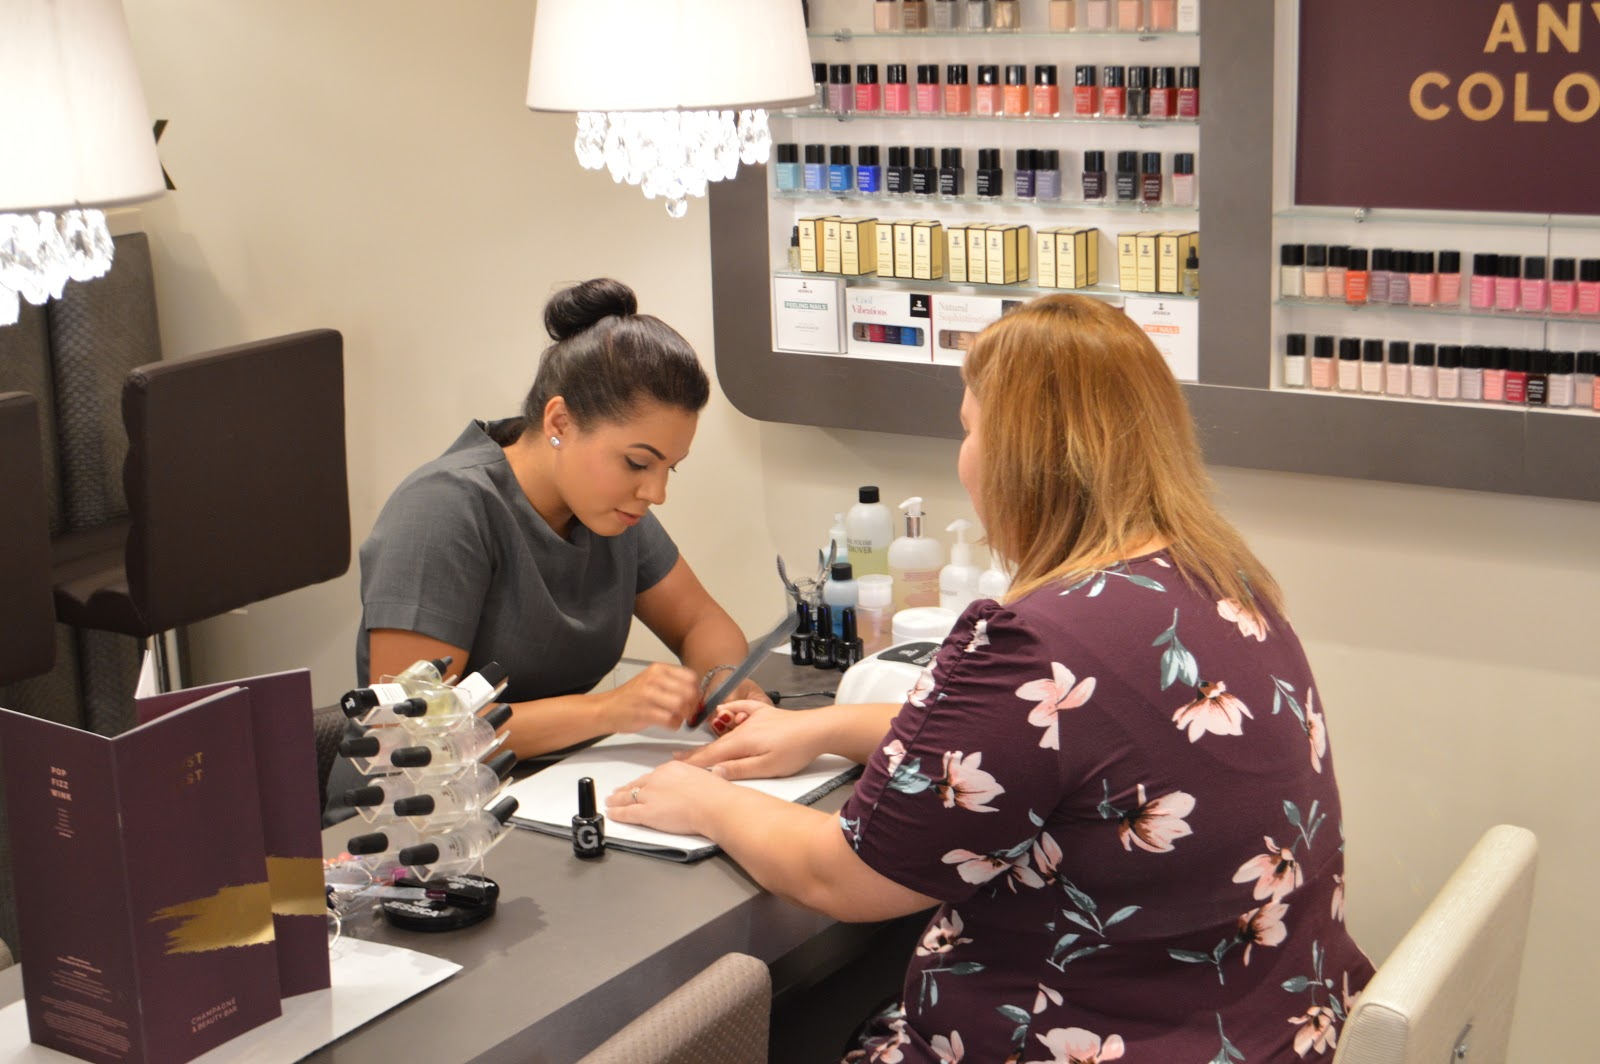 this is a picture of a nail technician applying gel polish